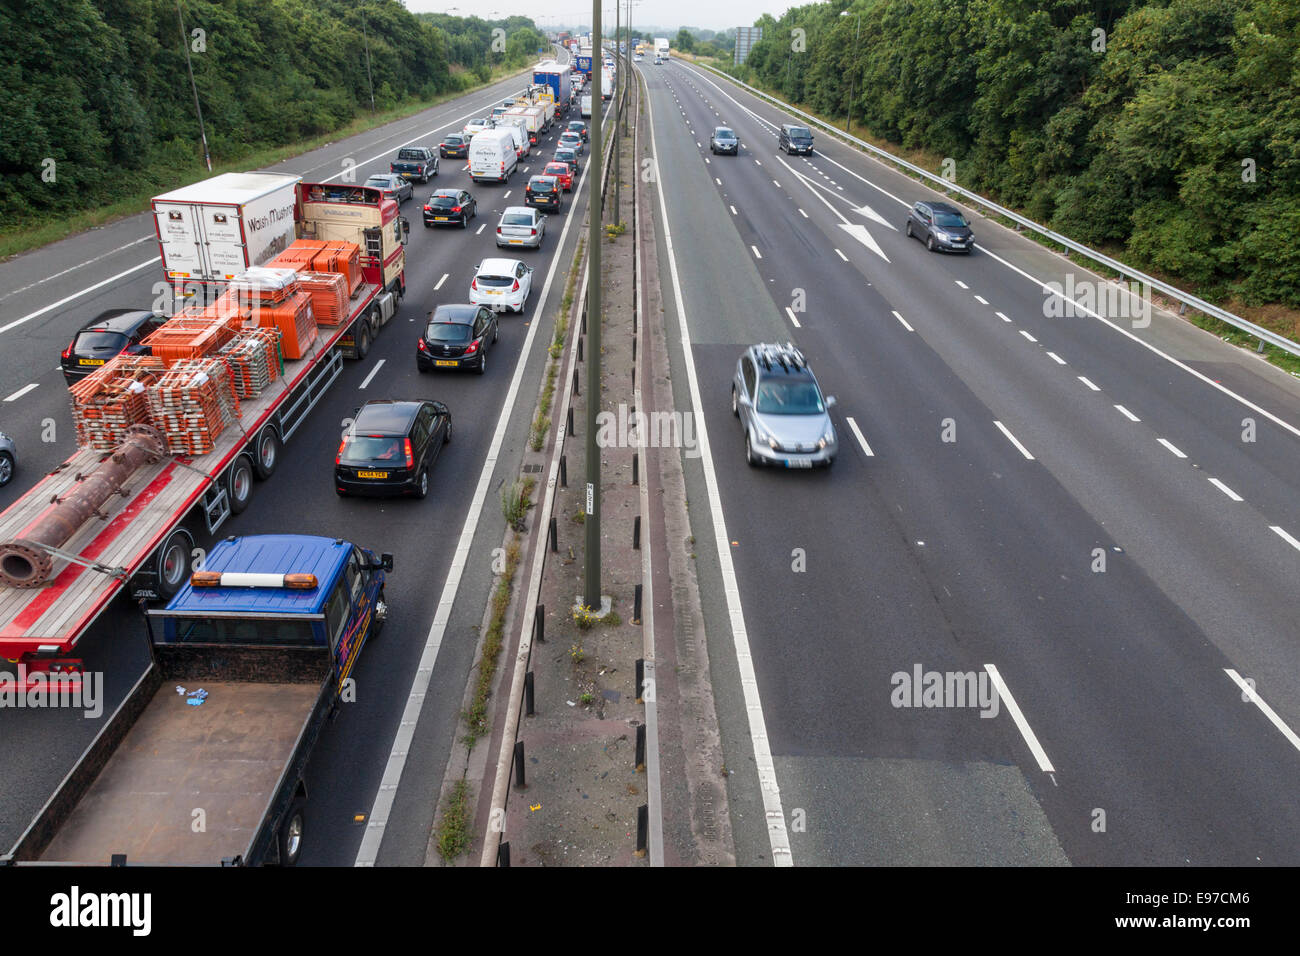 Southbound traffic stopped and queueing on the M1 motorway with the northbound carriageway clear. Nottinghamshire - Stock Image